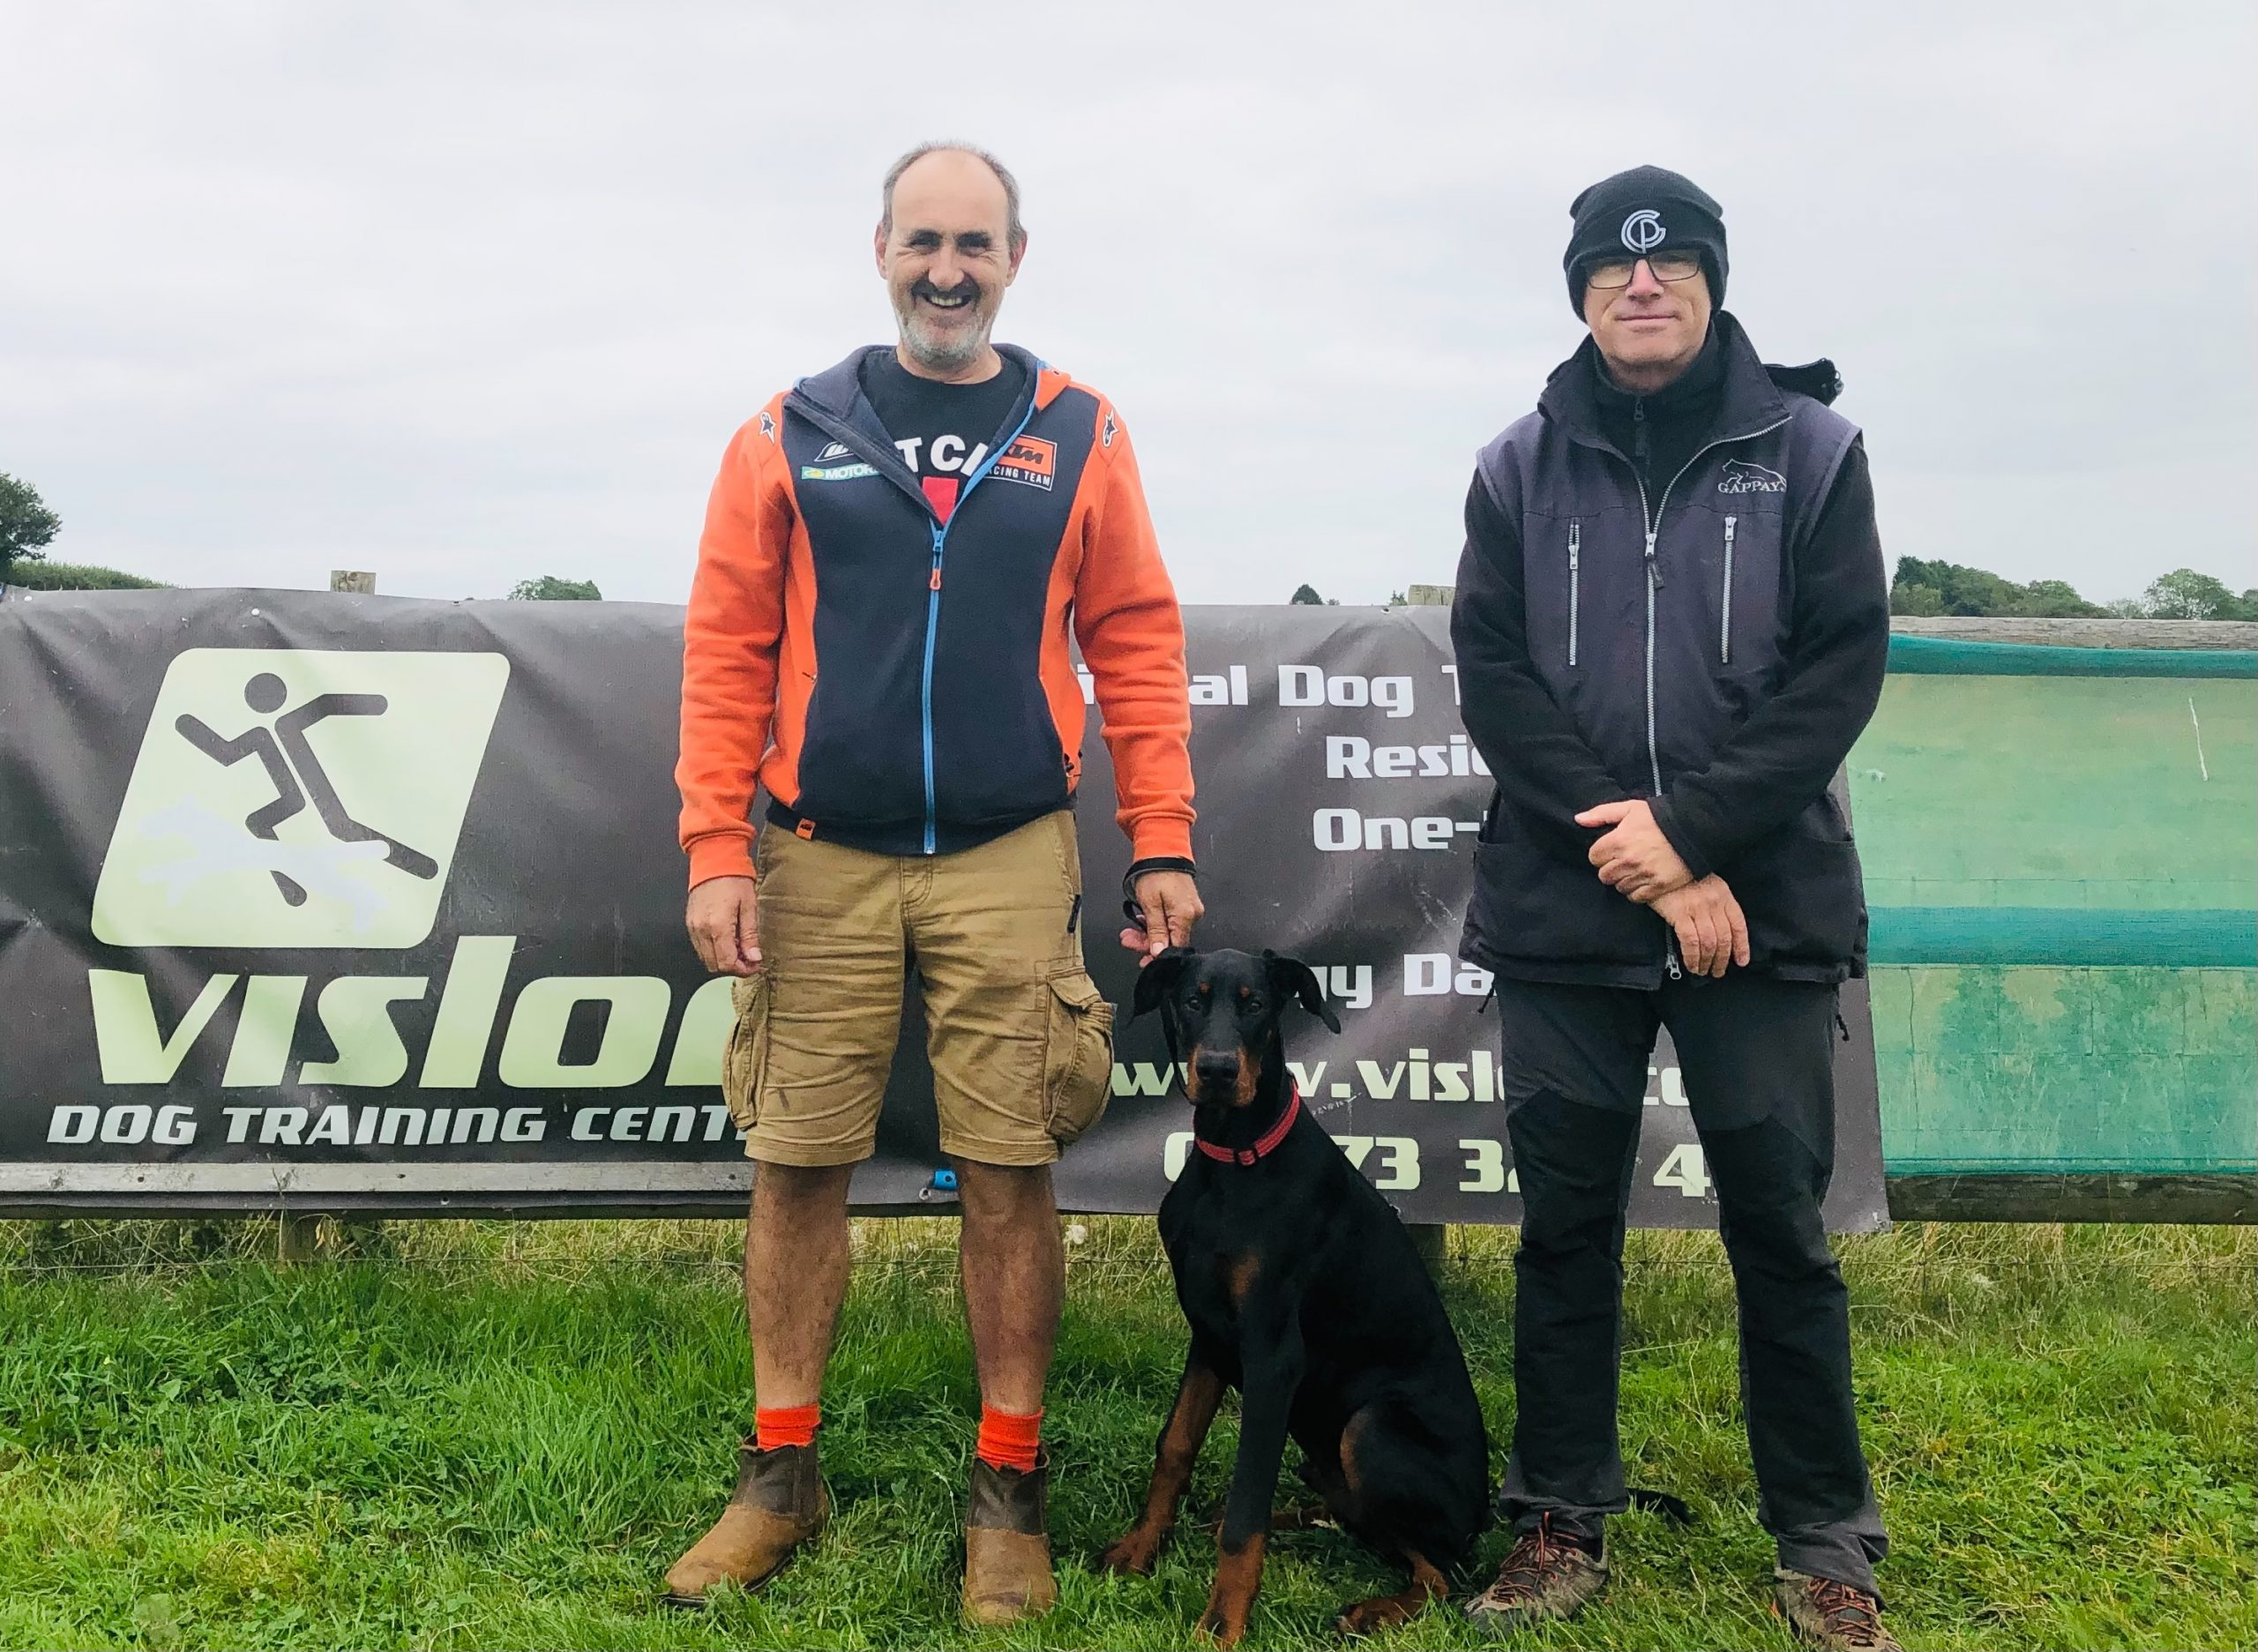 Richard Mileson & his dog Henry One to One Dog Training at Vislor- West Midlands